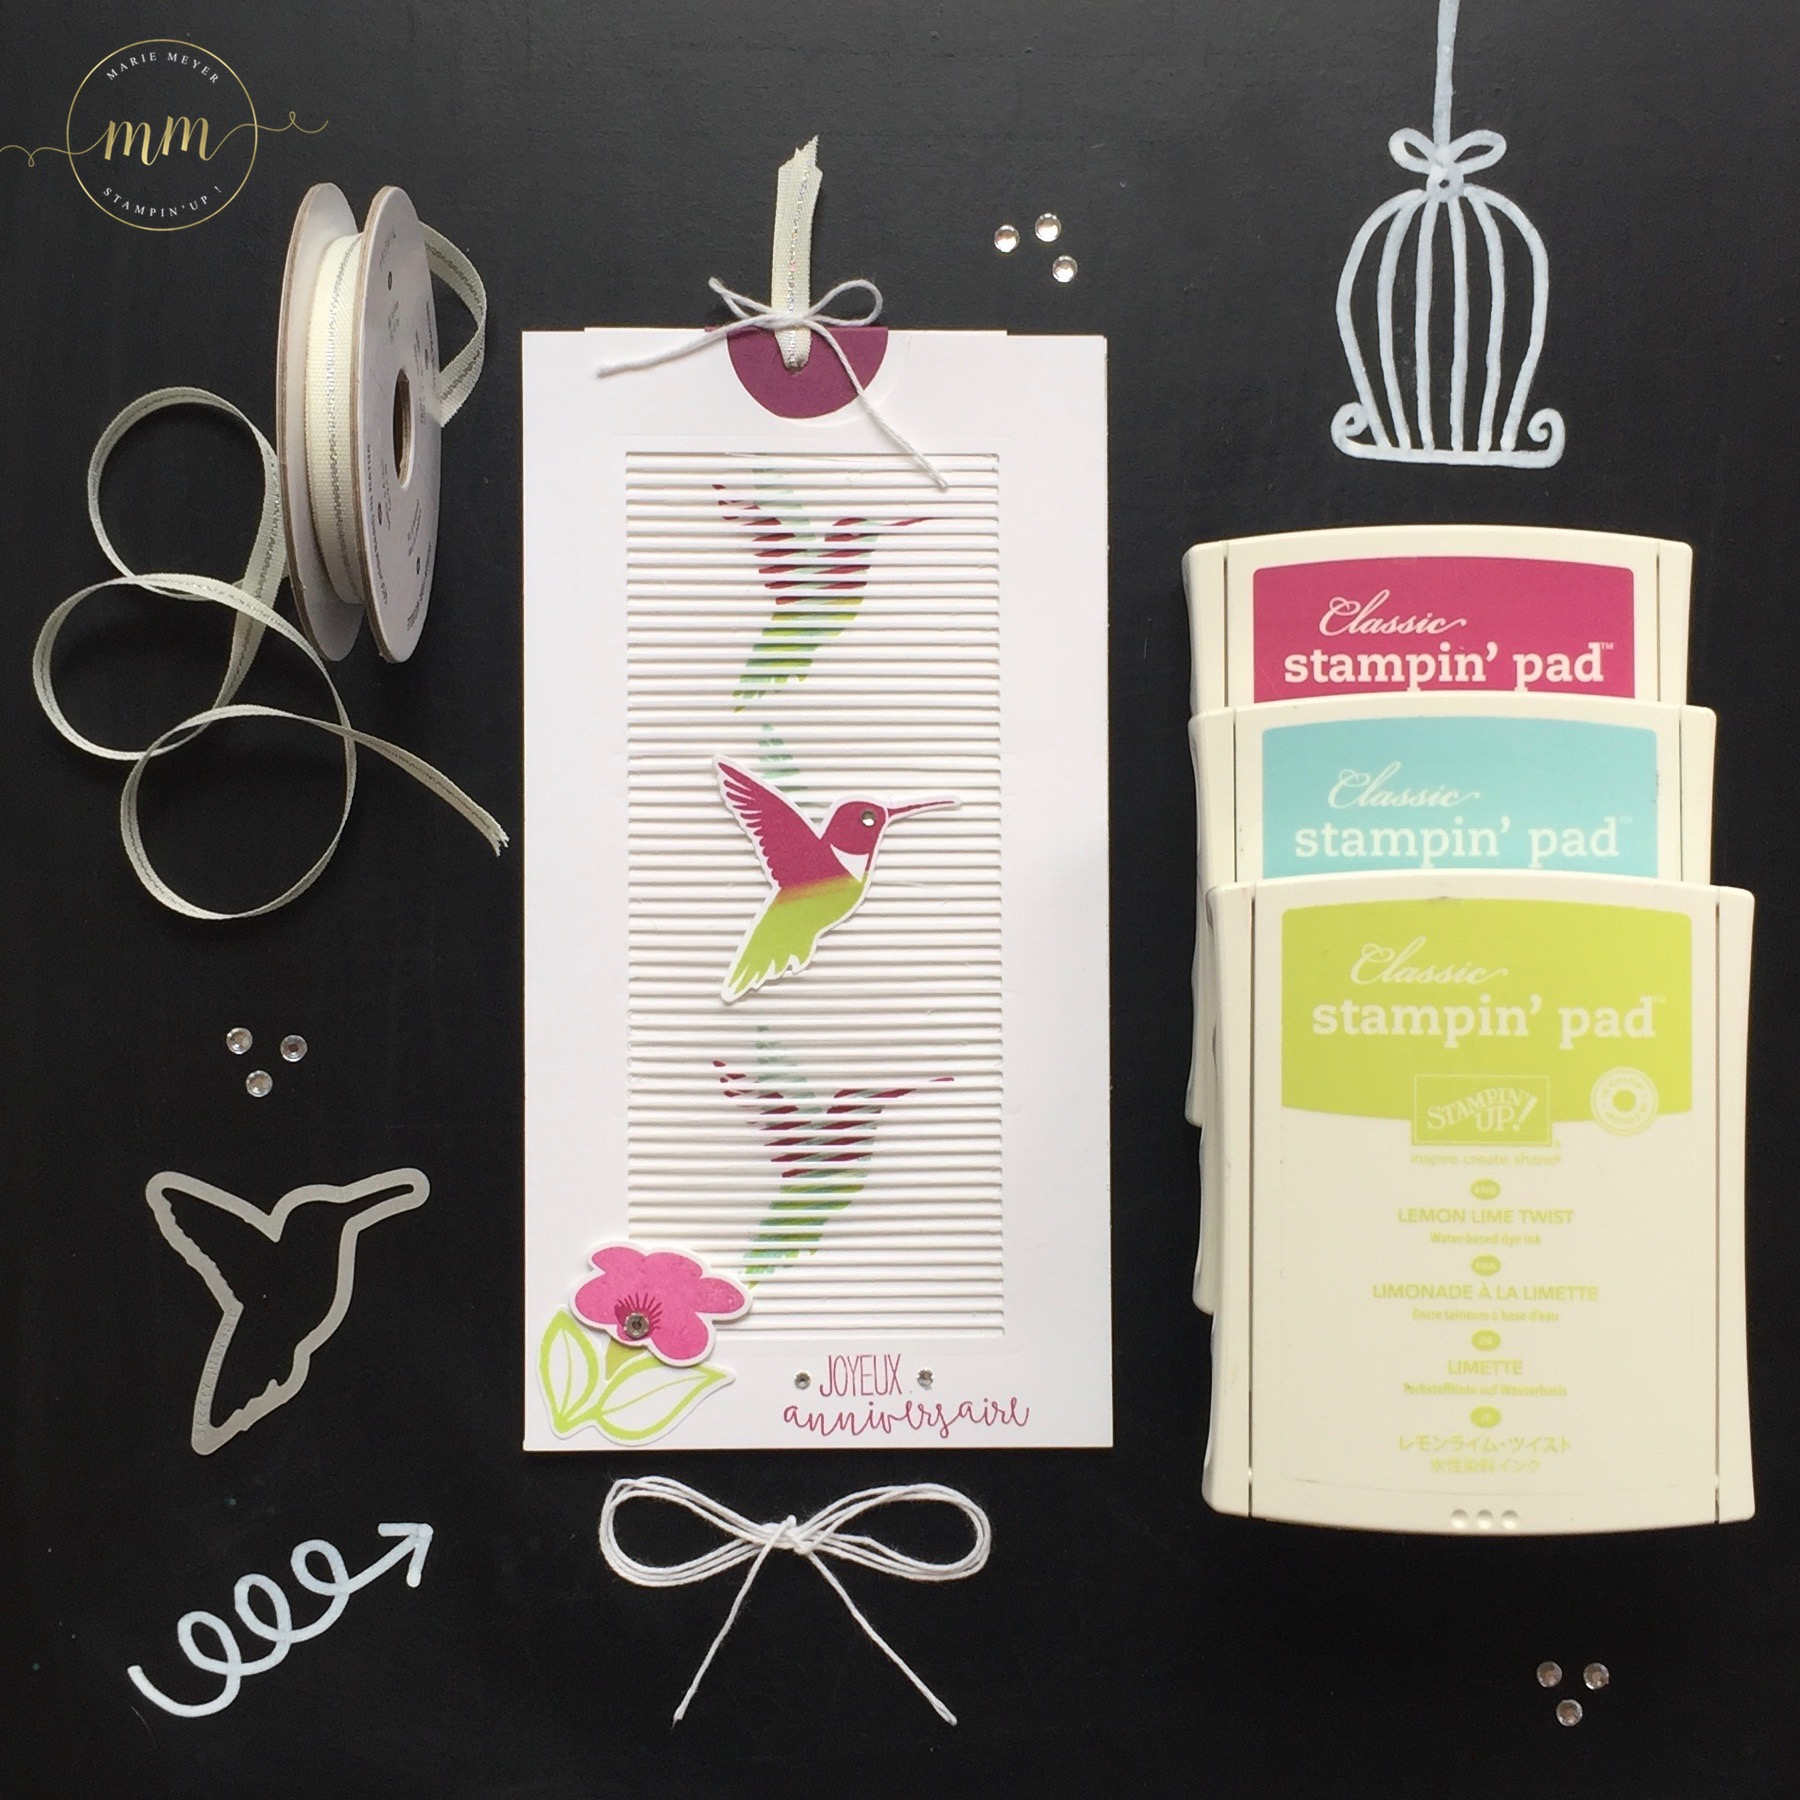 Carte d'anniversaire interactive Thinlits en mouvement et set de tampon You Move Me par Marie Meyer Stampin up - http://ateliers-scrapbooking.fr/ - Interactive card Move Me Thinlits - Interaktive Karte Thinlits Flatterhaft